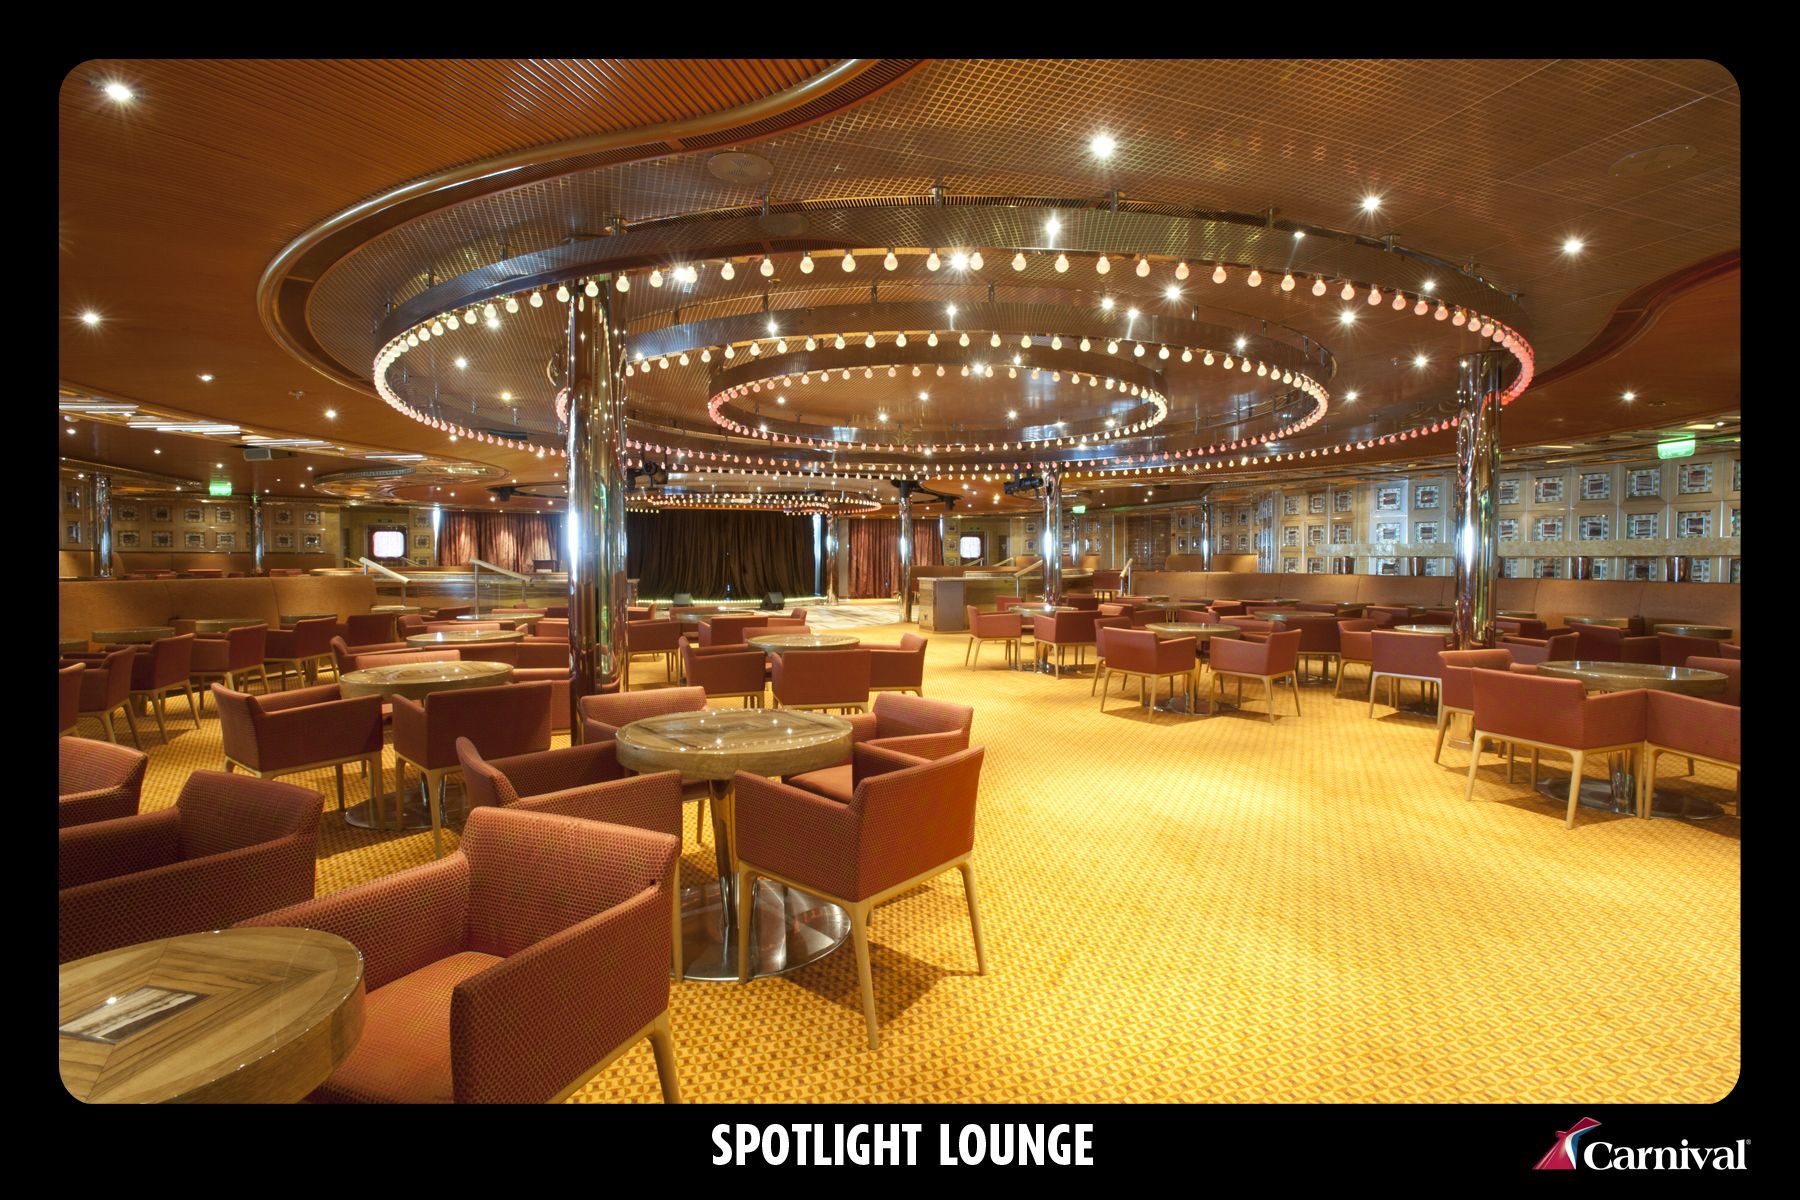 Spotlight Lounge On The Carnival Magic (With images